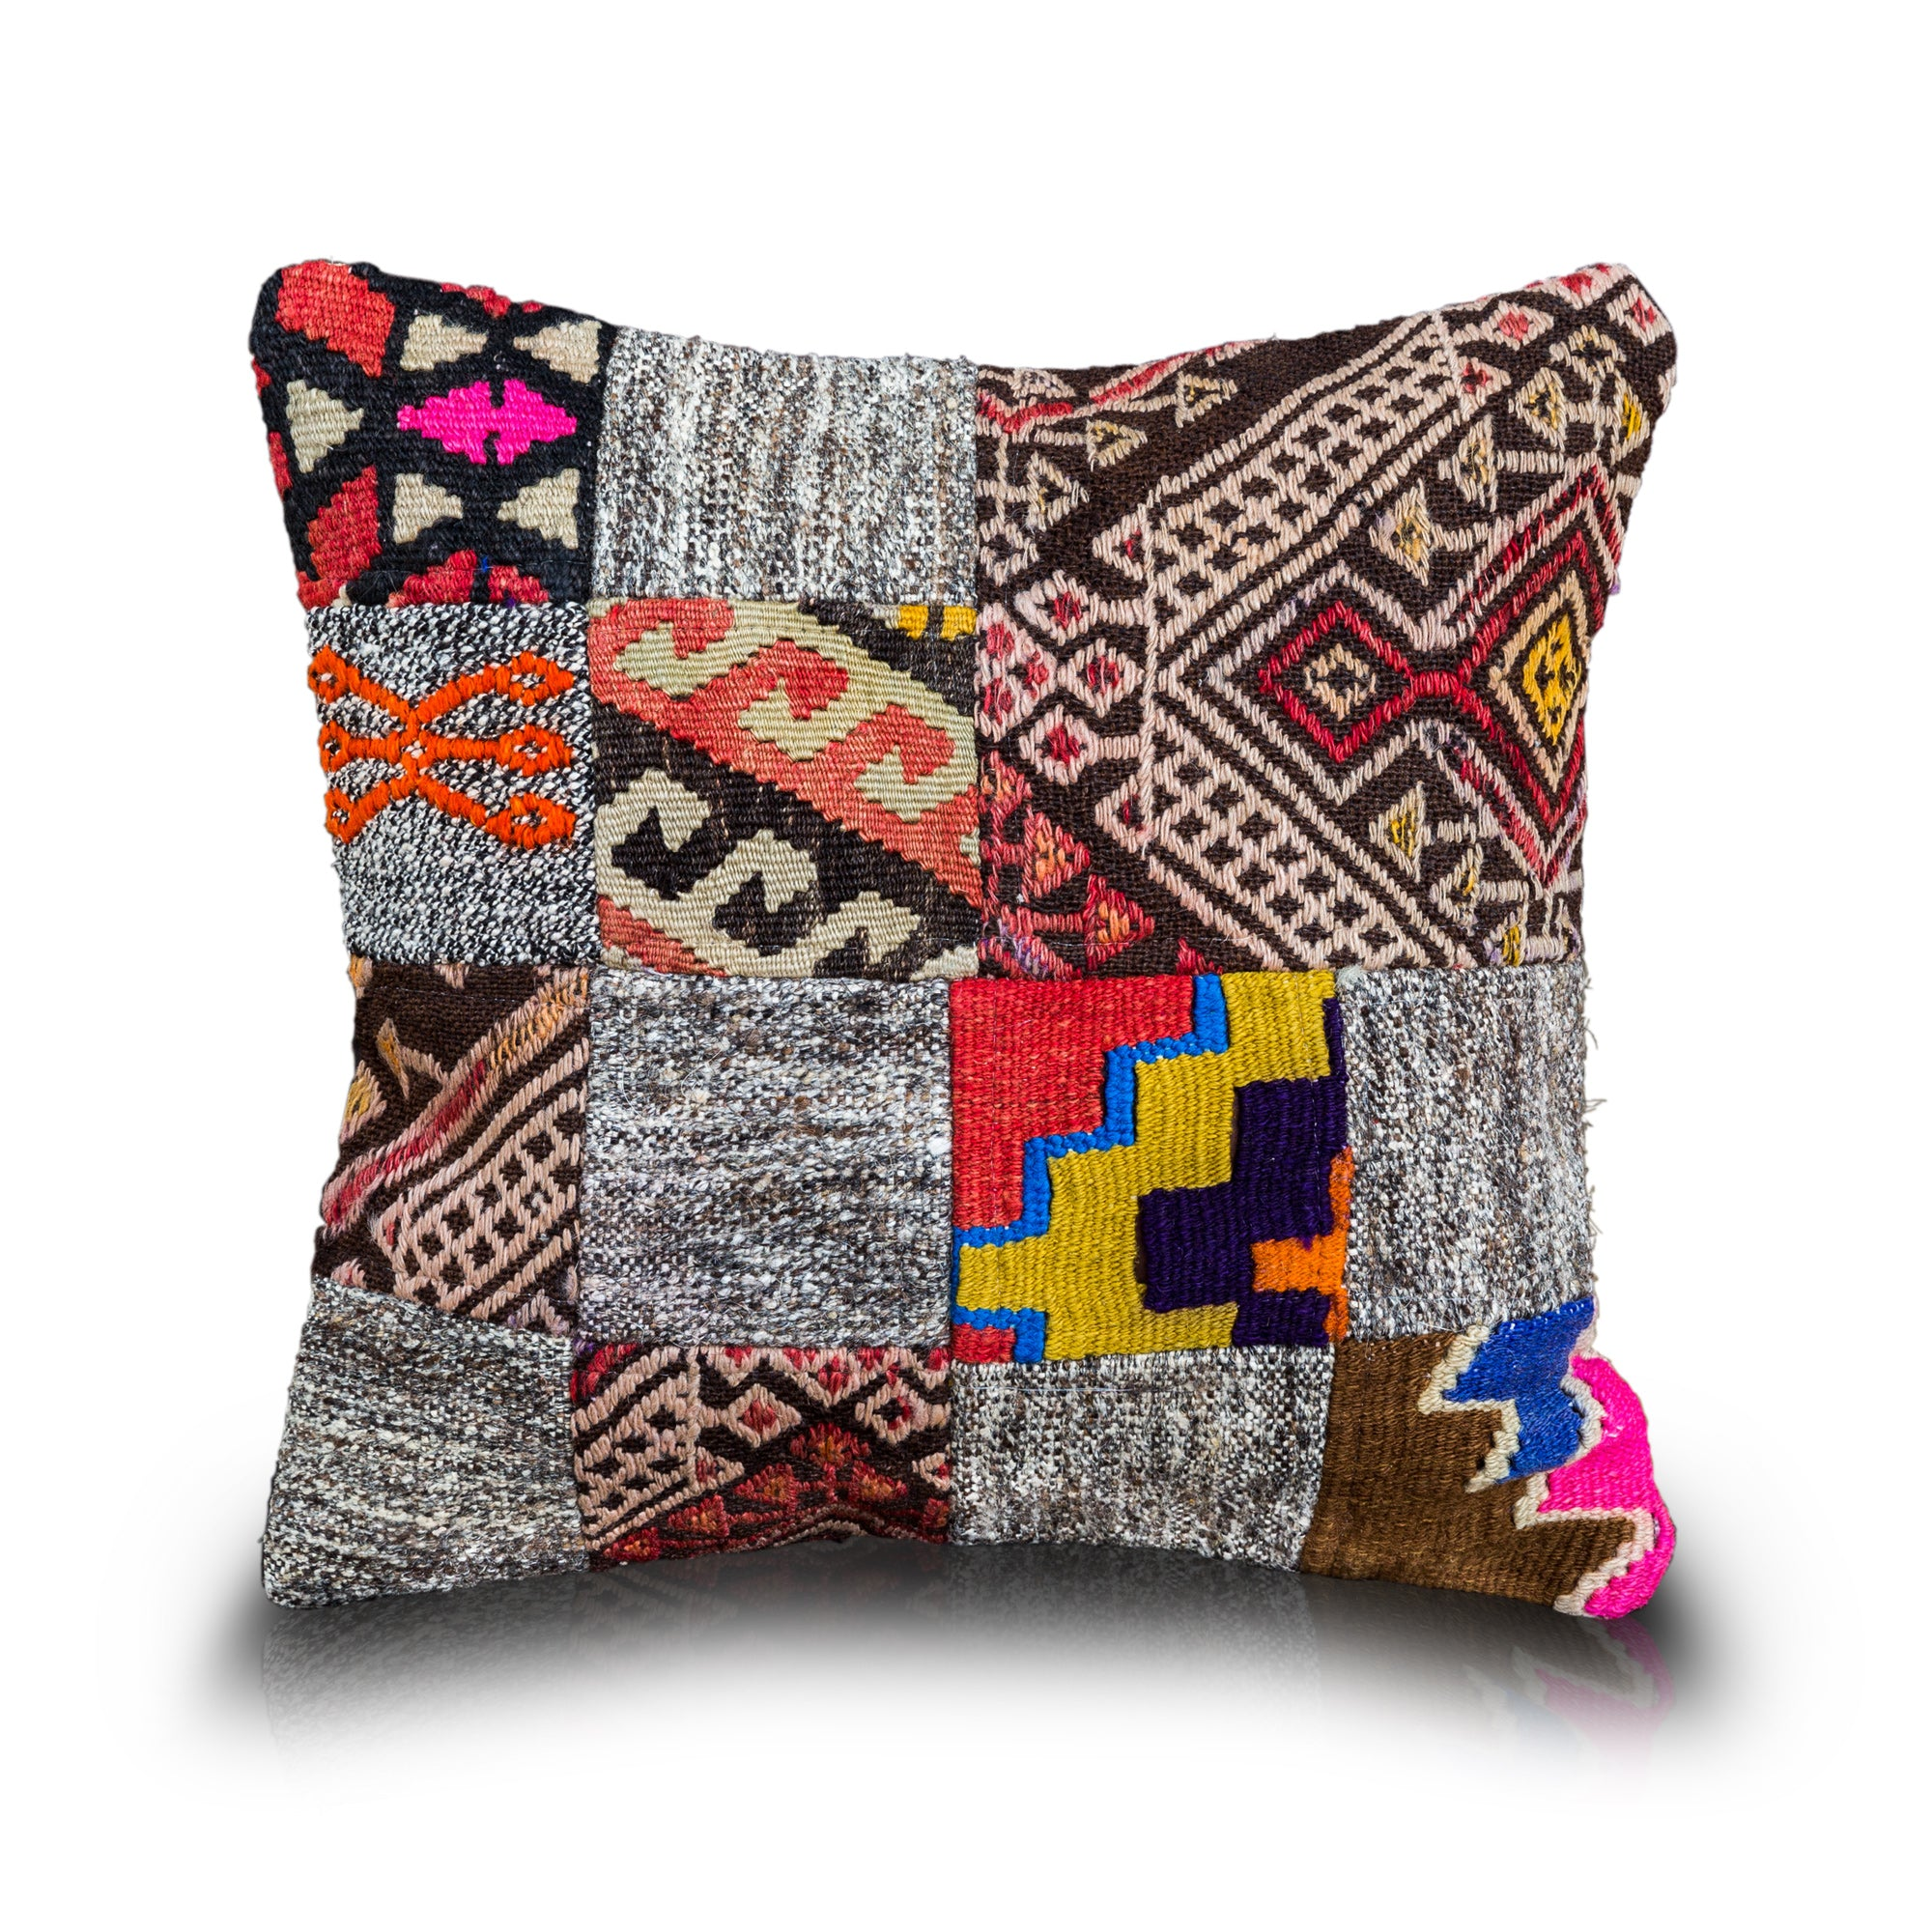 guaranteed pic henderson blog good emily how pillow to look size pillows colorful combos combinations mix texture decorative color